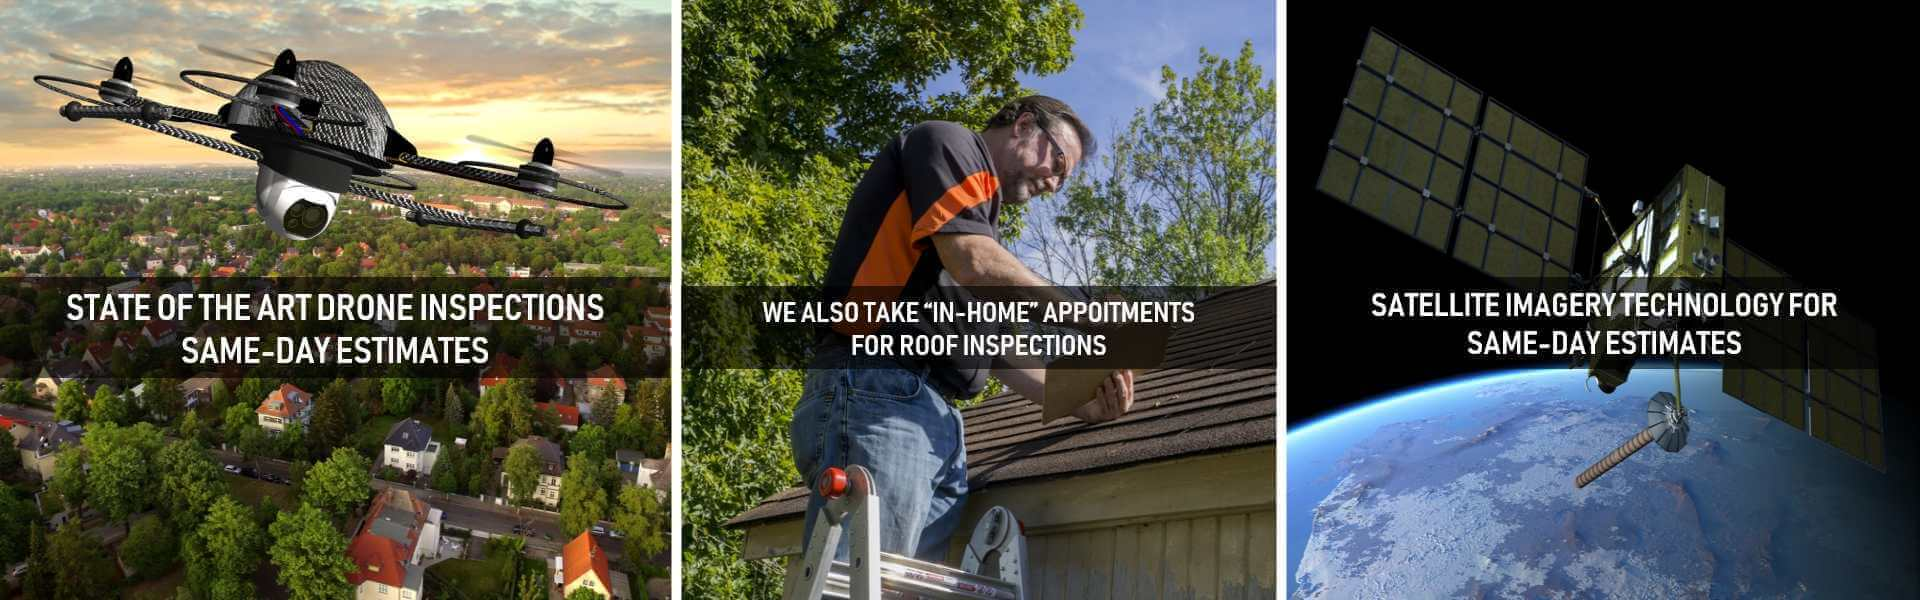 honest-roof-inspection-options-home-page-banner4-optimized